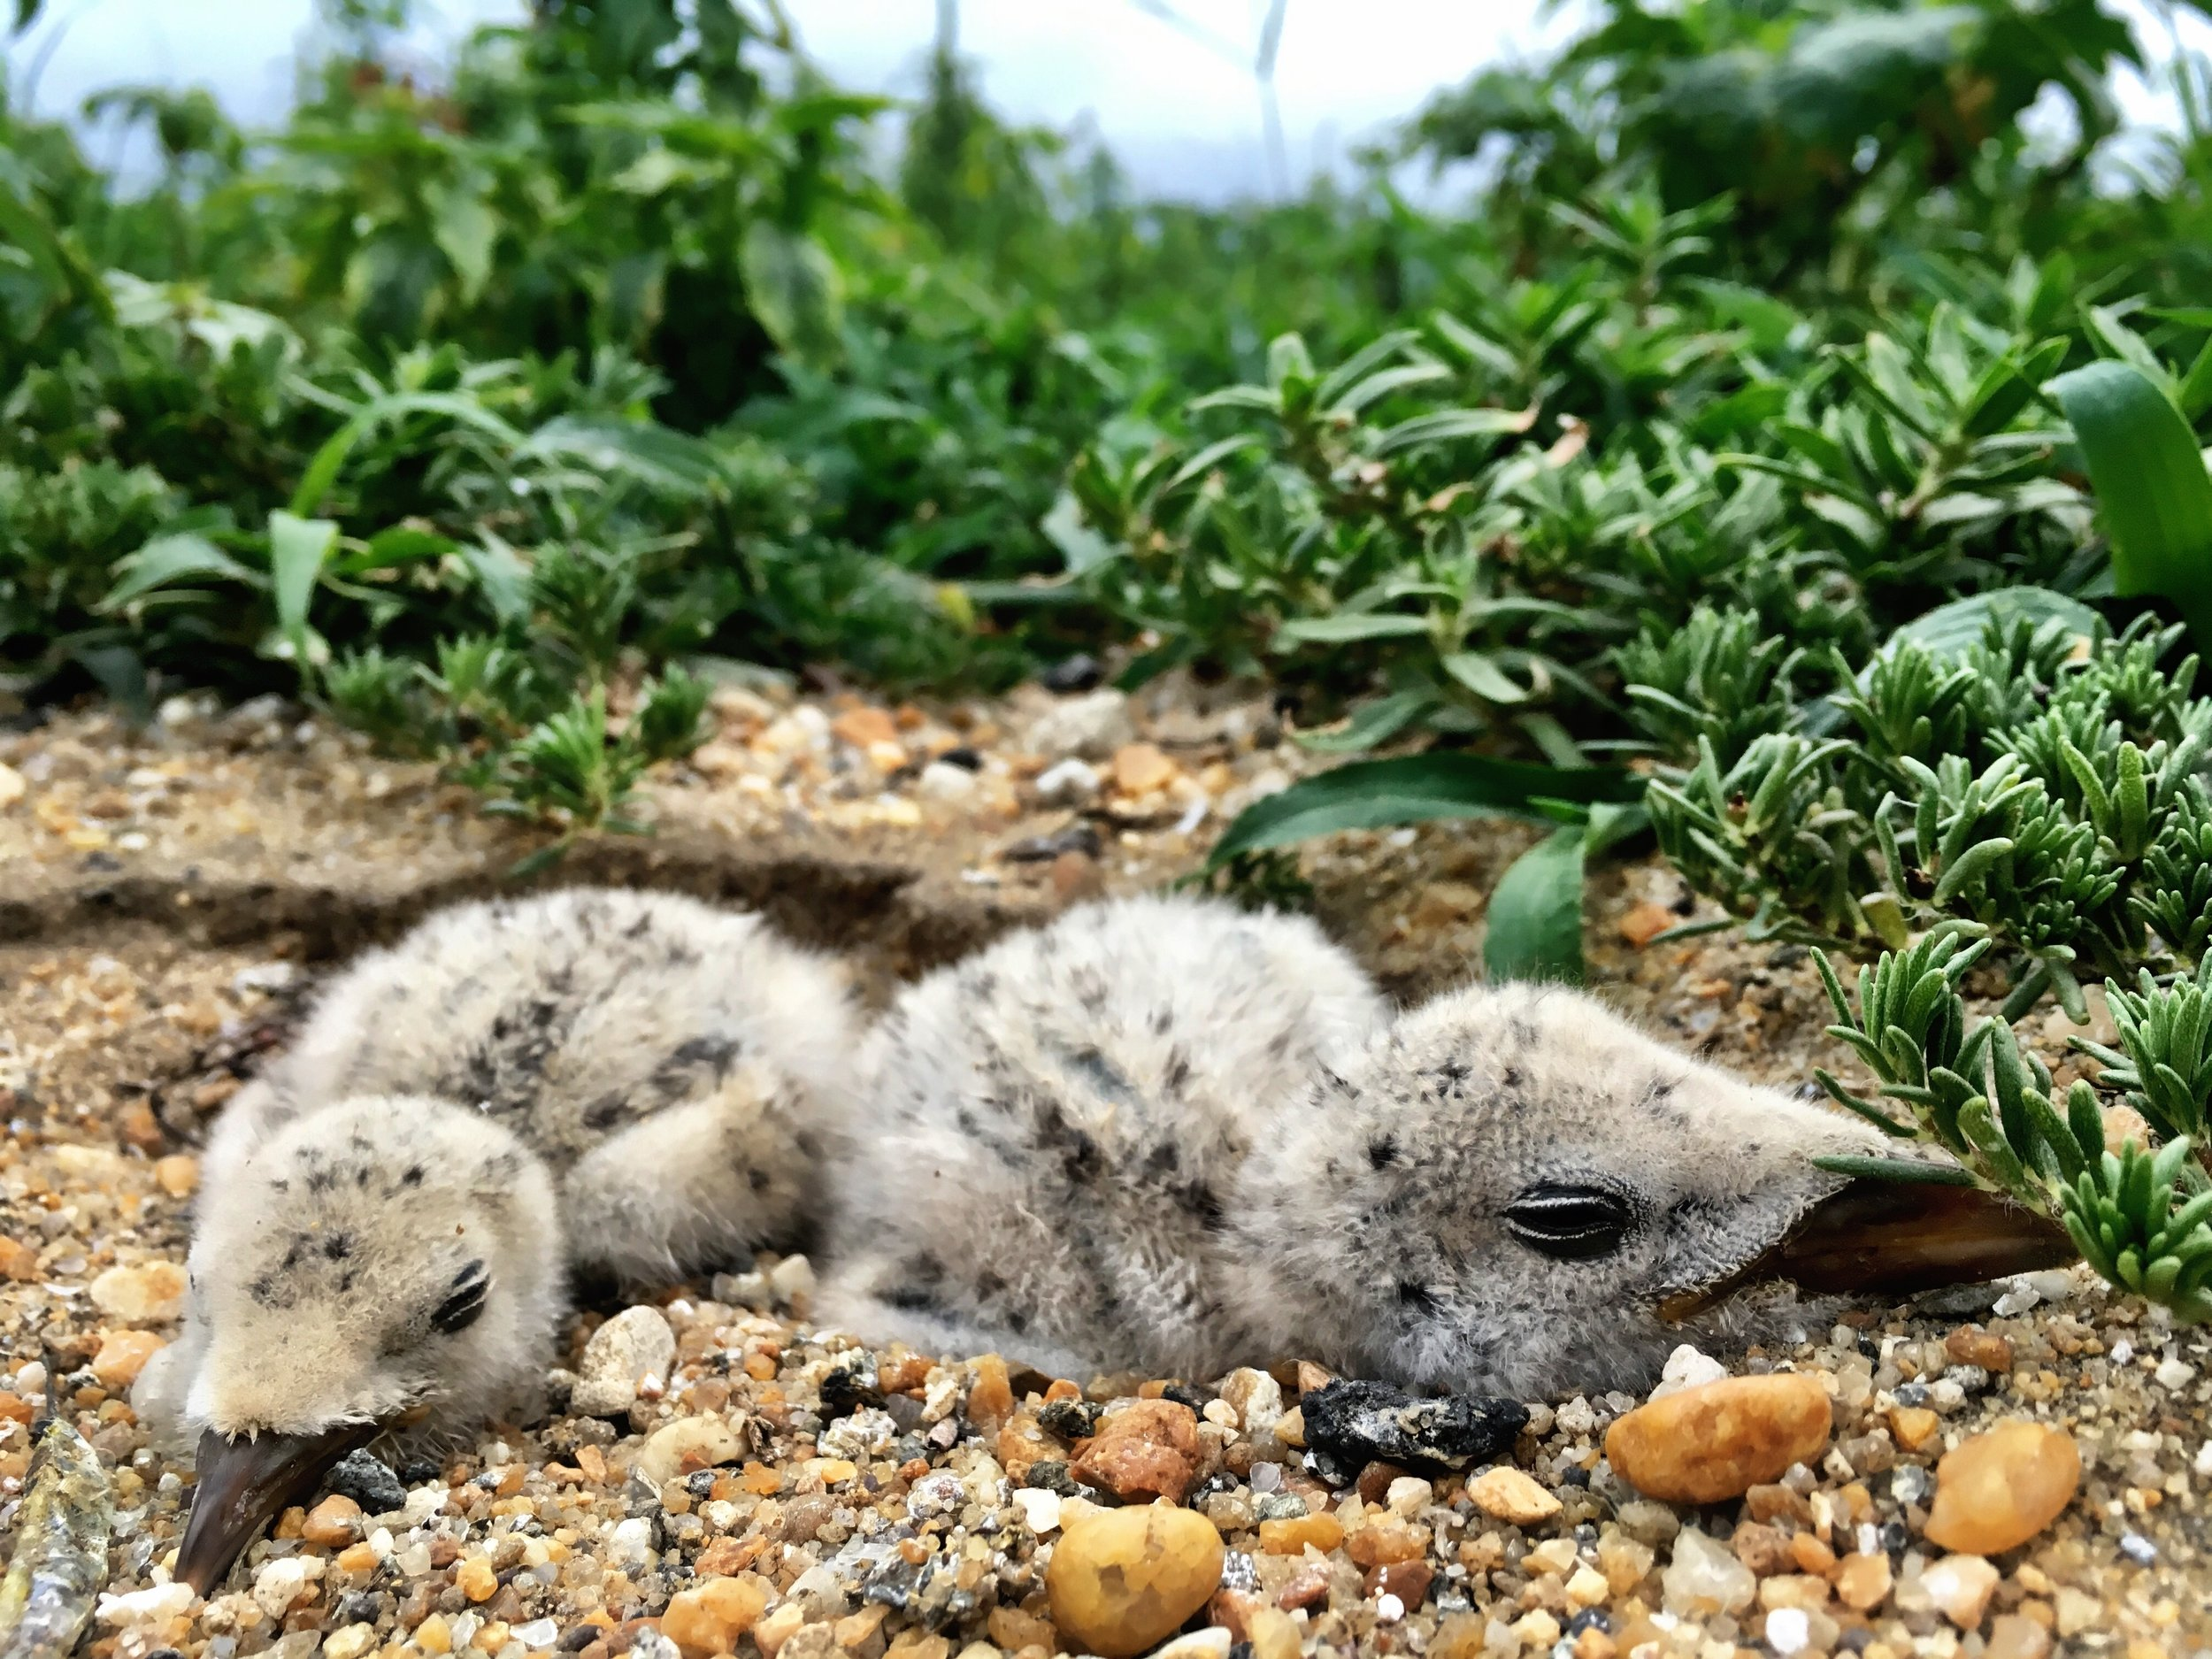 Black skimmer chicks  We mark young birds to monitor their survival prior to their first flight. These studies help us provide timely recommendations for our federal, state, and NGO partners charged with managing these species.